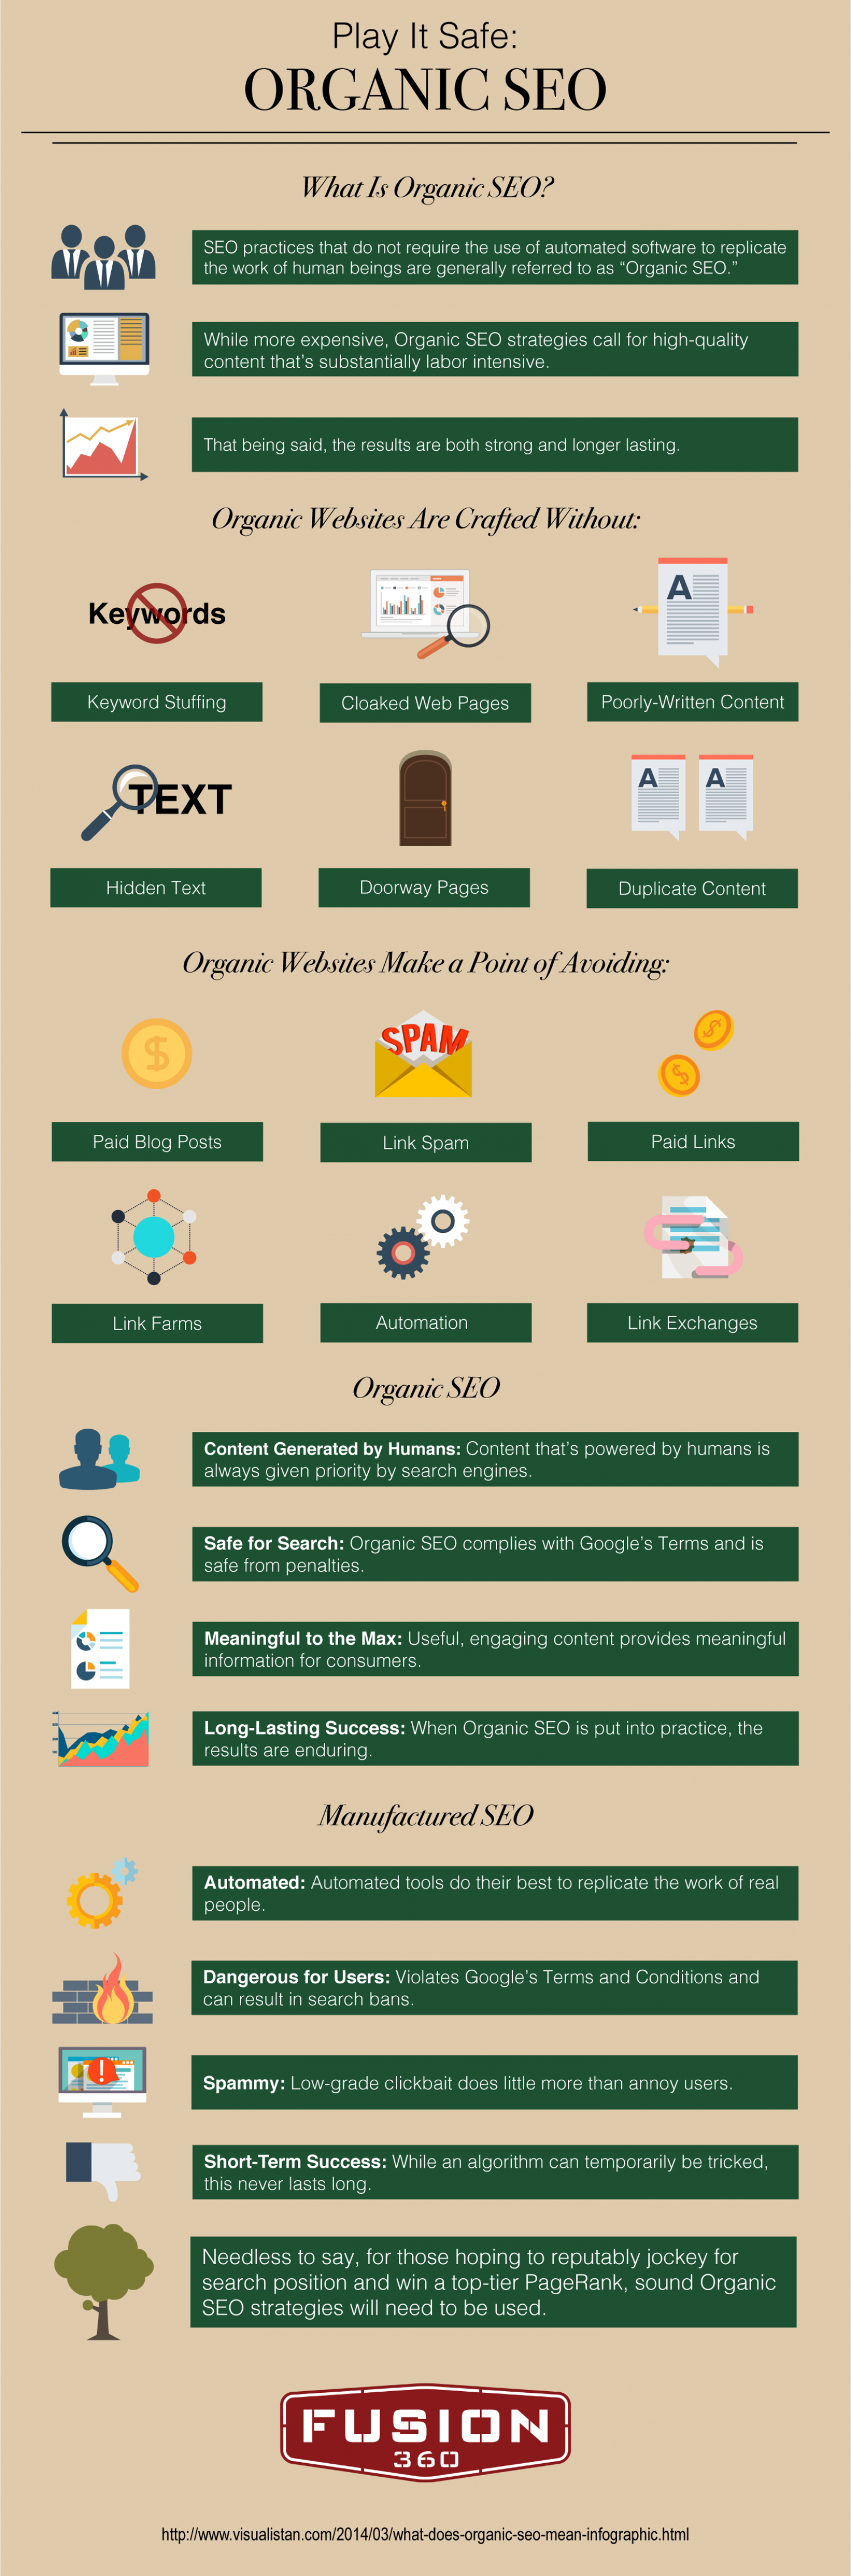 Play It Safe: Organic SEO Infographic